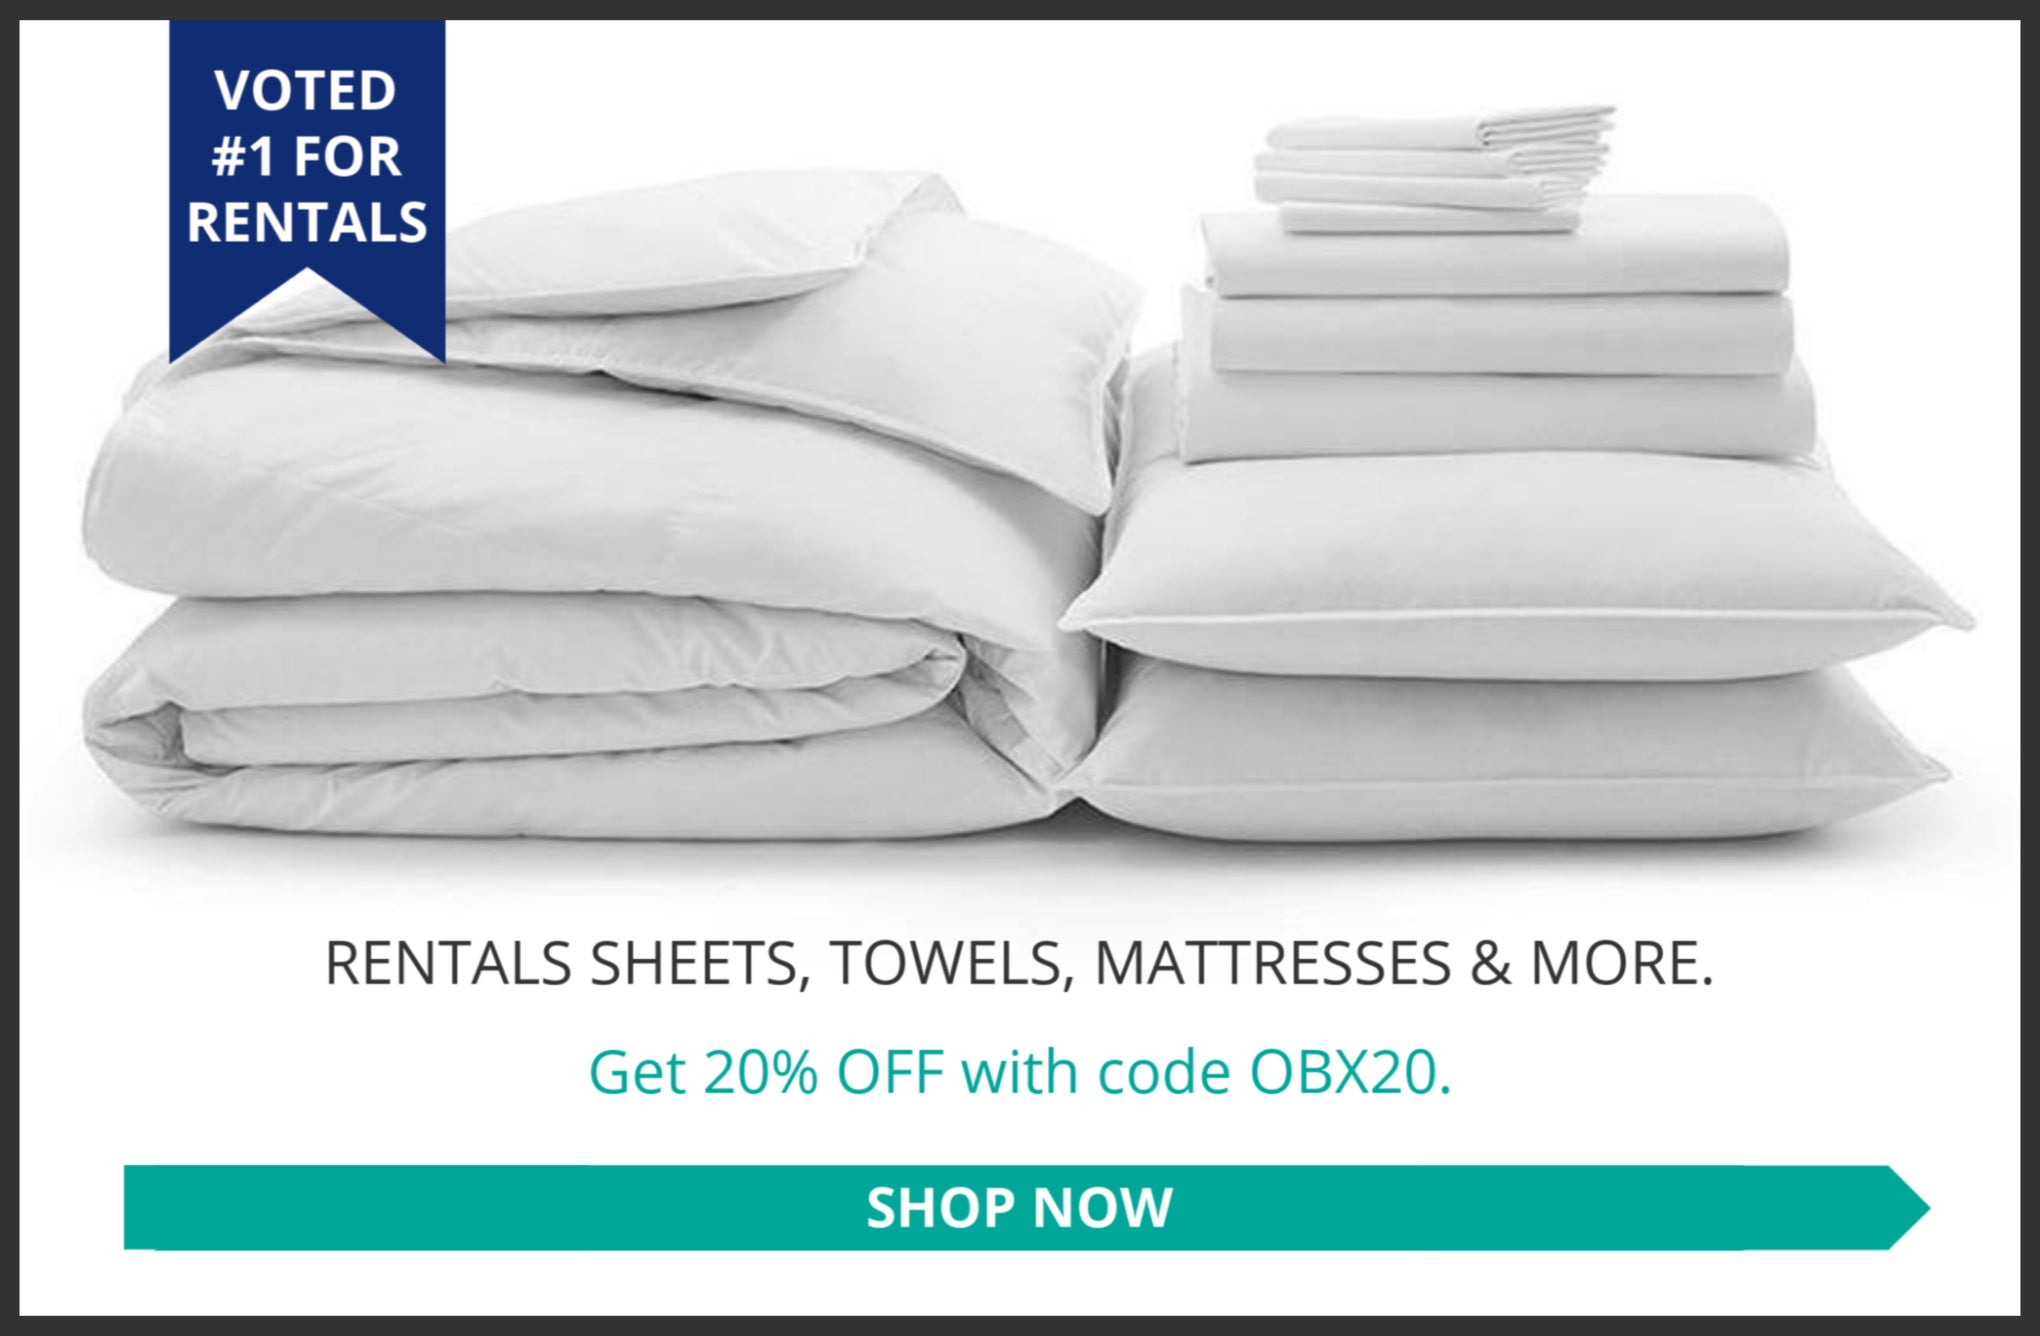 Shop all rental supplies | Good Host Shop